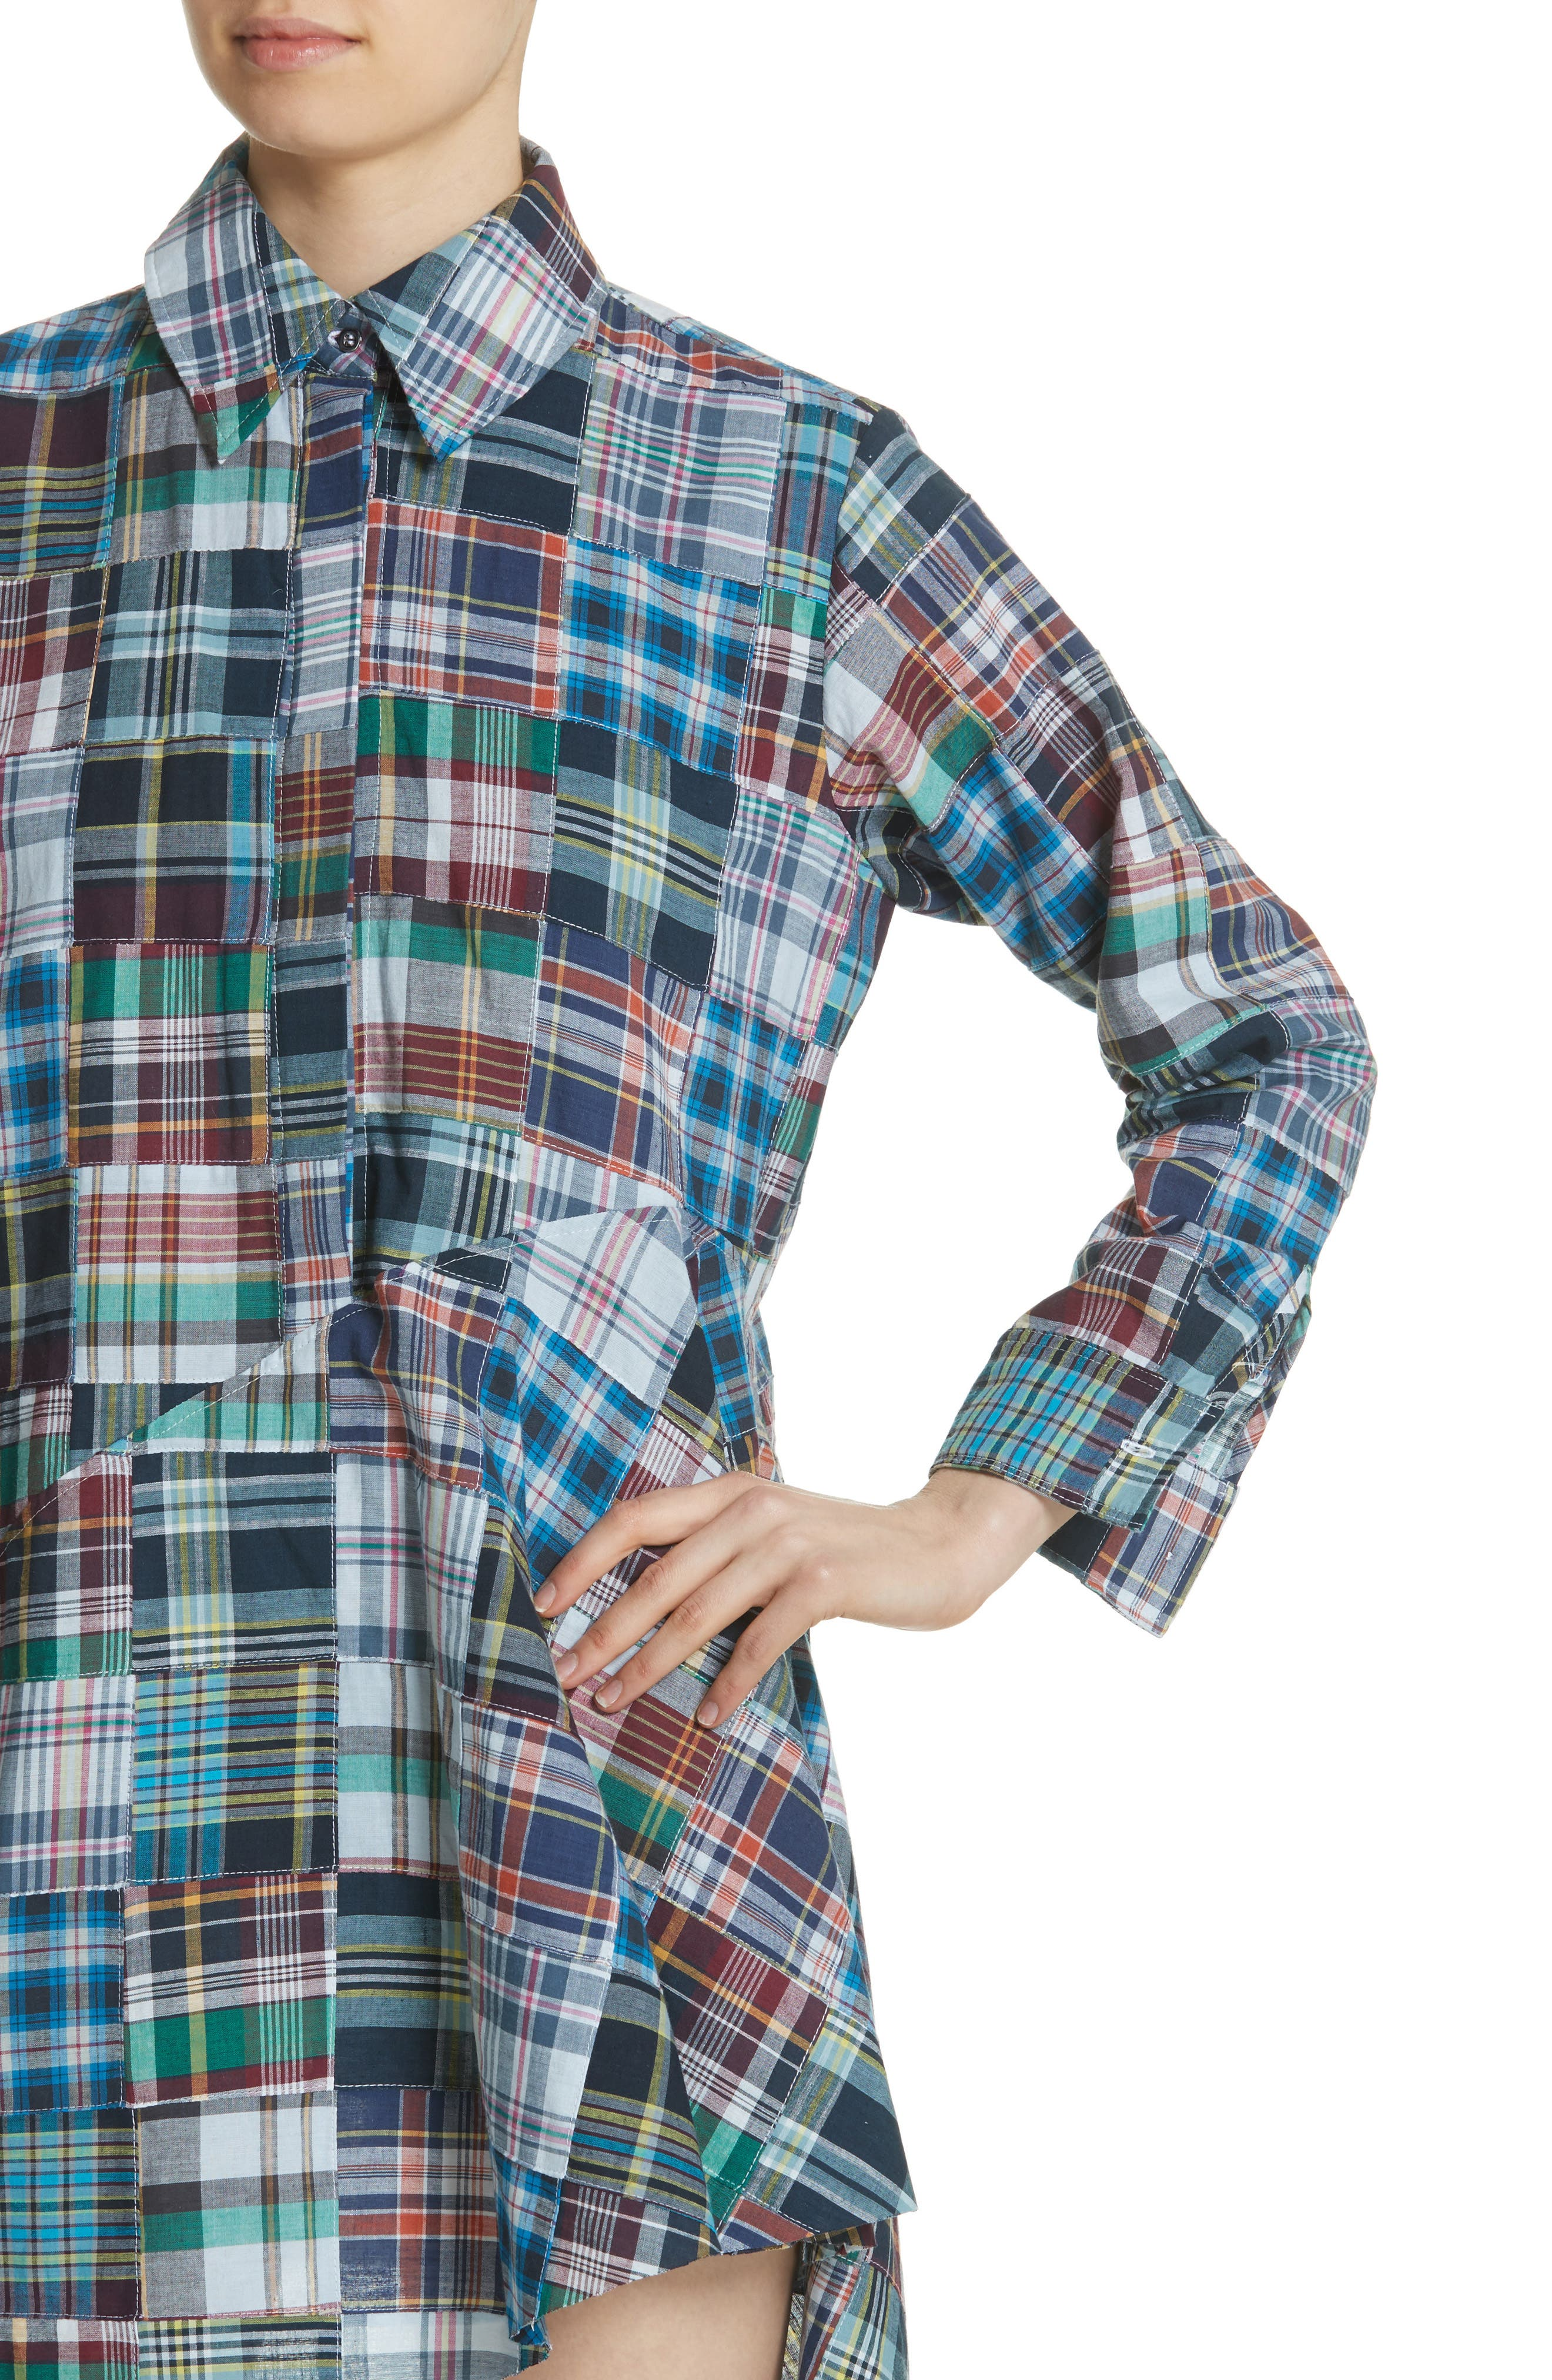 Marques'Almeida Asymmetric Patchwork Plaid Shirtdress,                             Alternate thumbnail 4, color,                             Navy/Multi